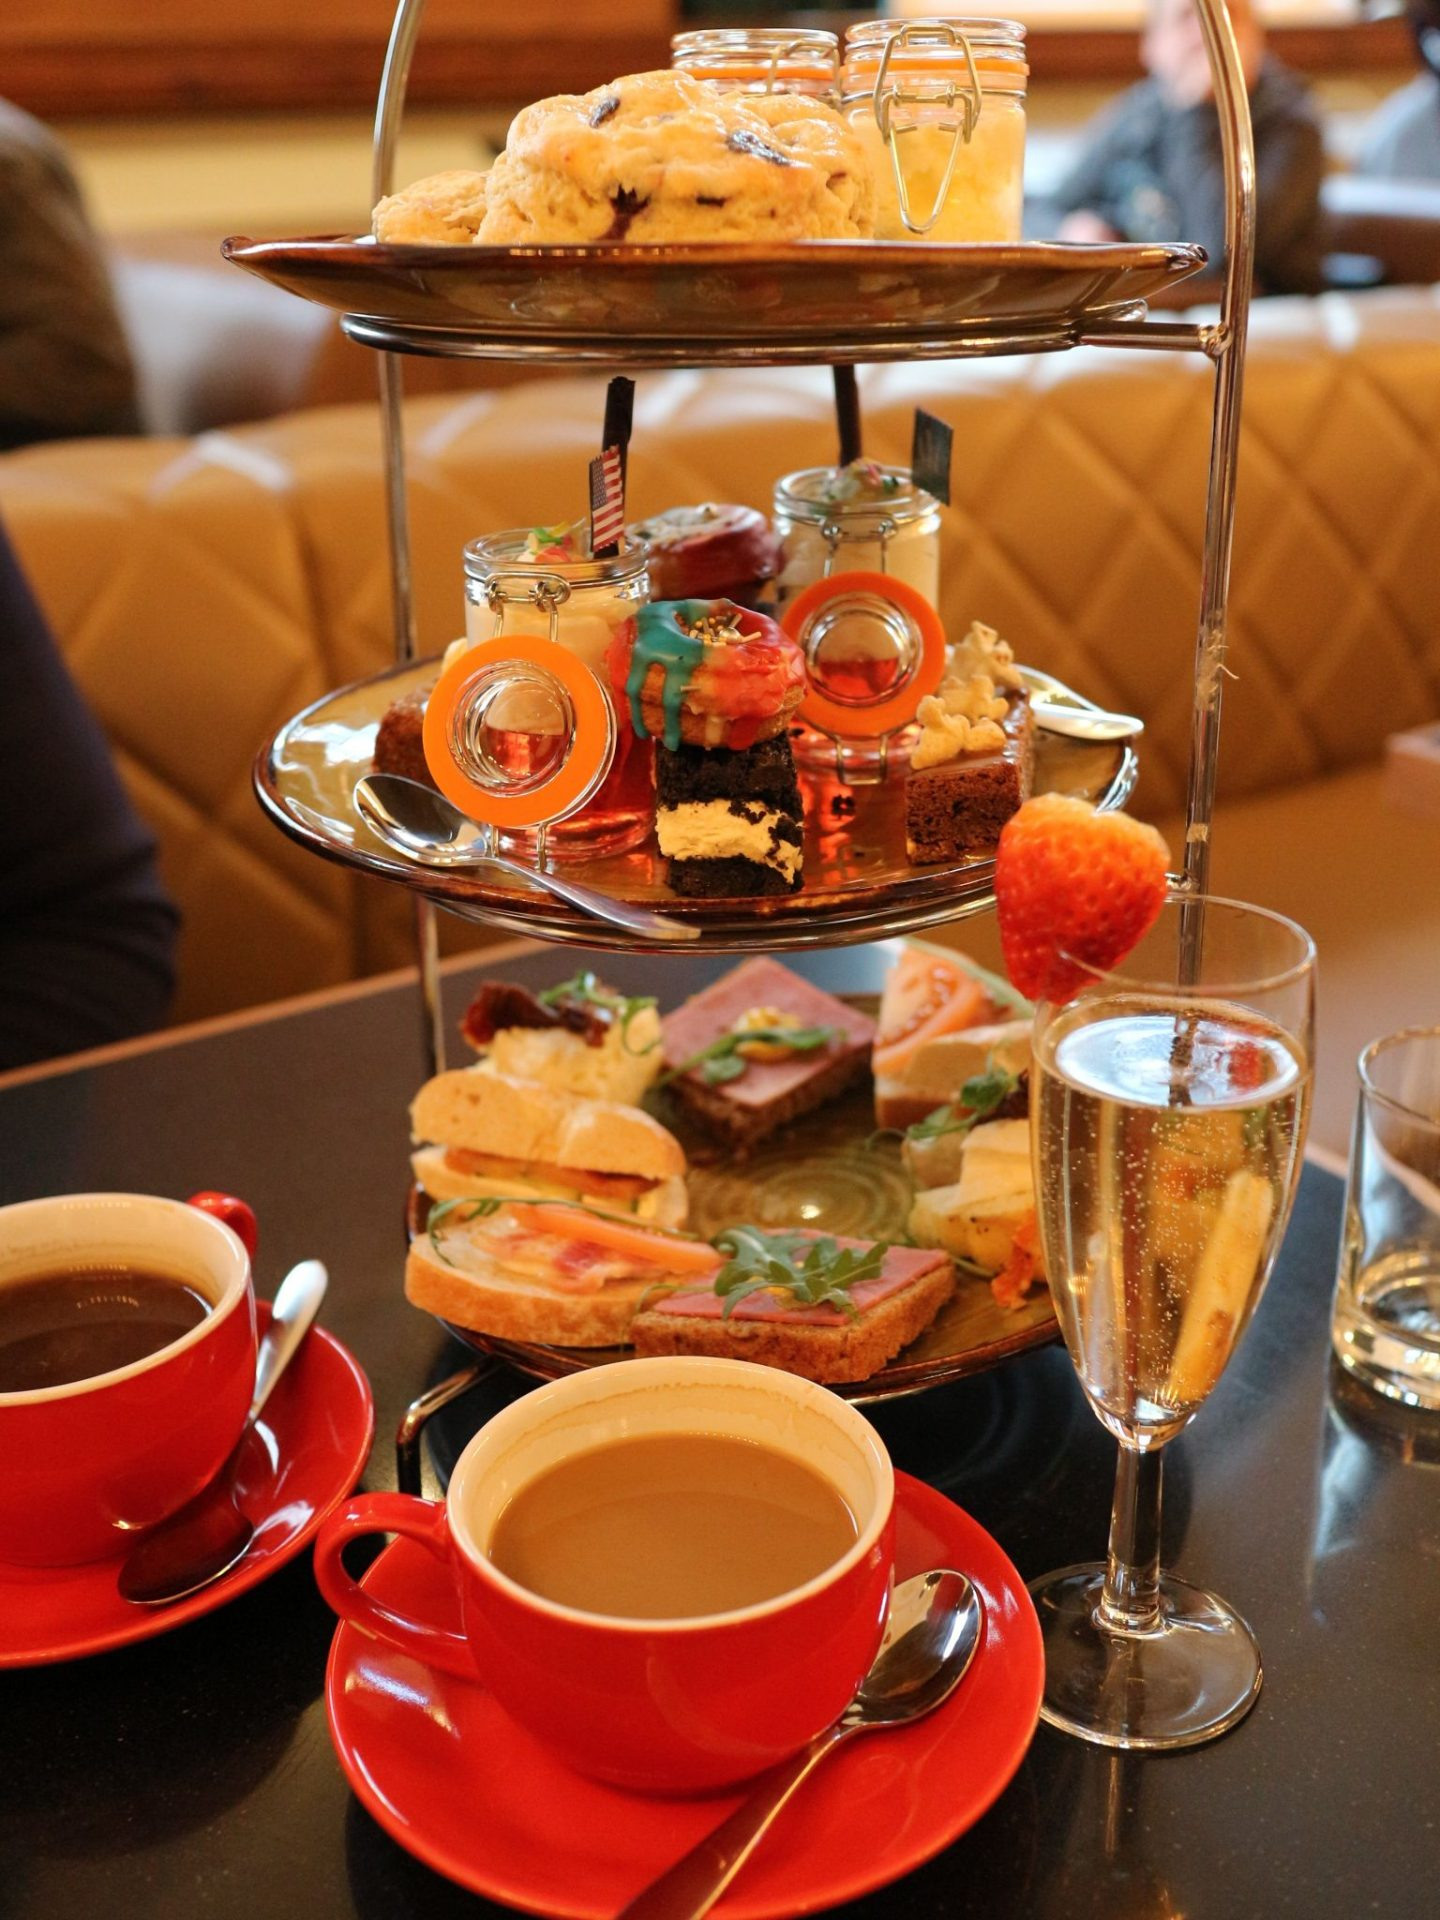 Afternoon Tea. NYL Afternoon Tea. Liverpool Restaurant. Visit Liverpool. Hen Party Ideas. American Style Food. Afternoon Tea Treats. Champagne Lovers.